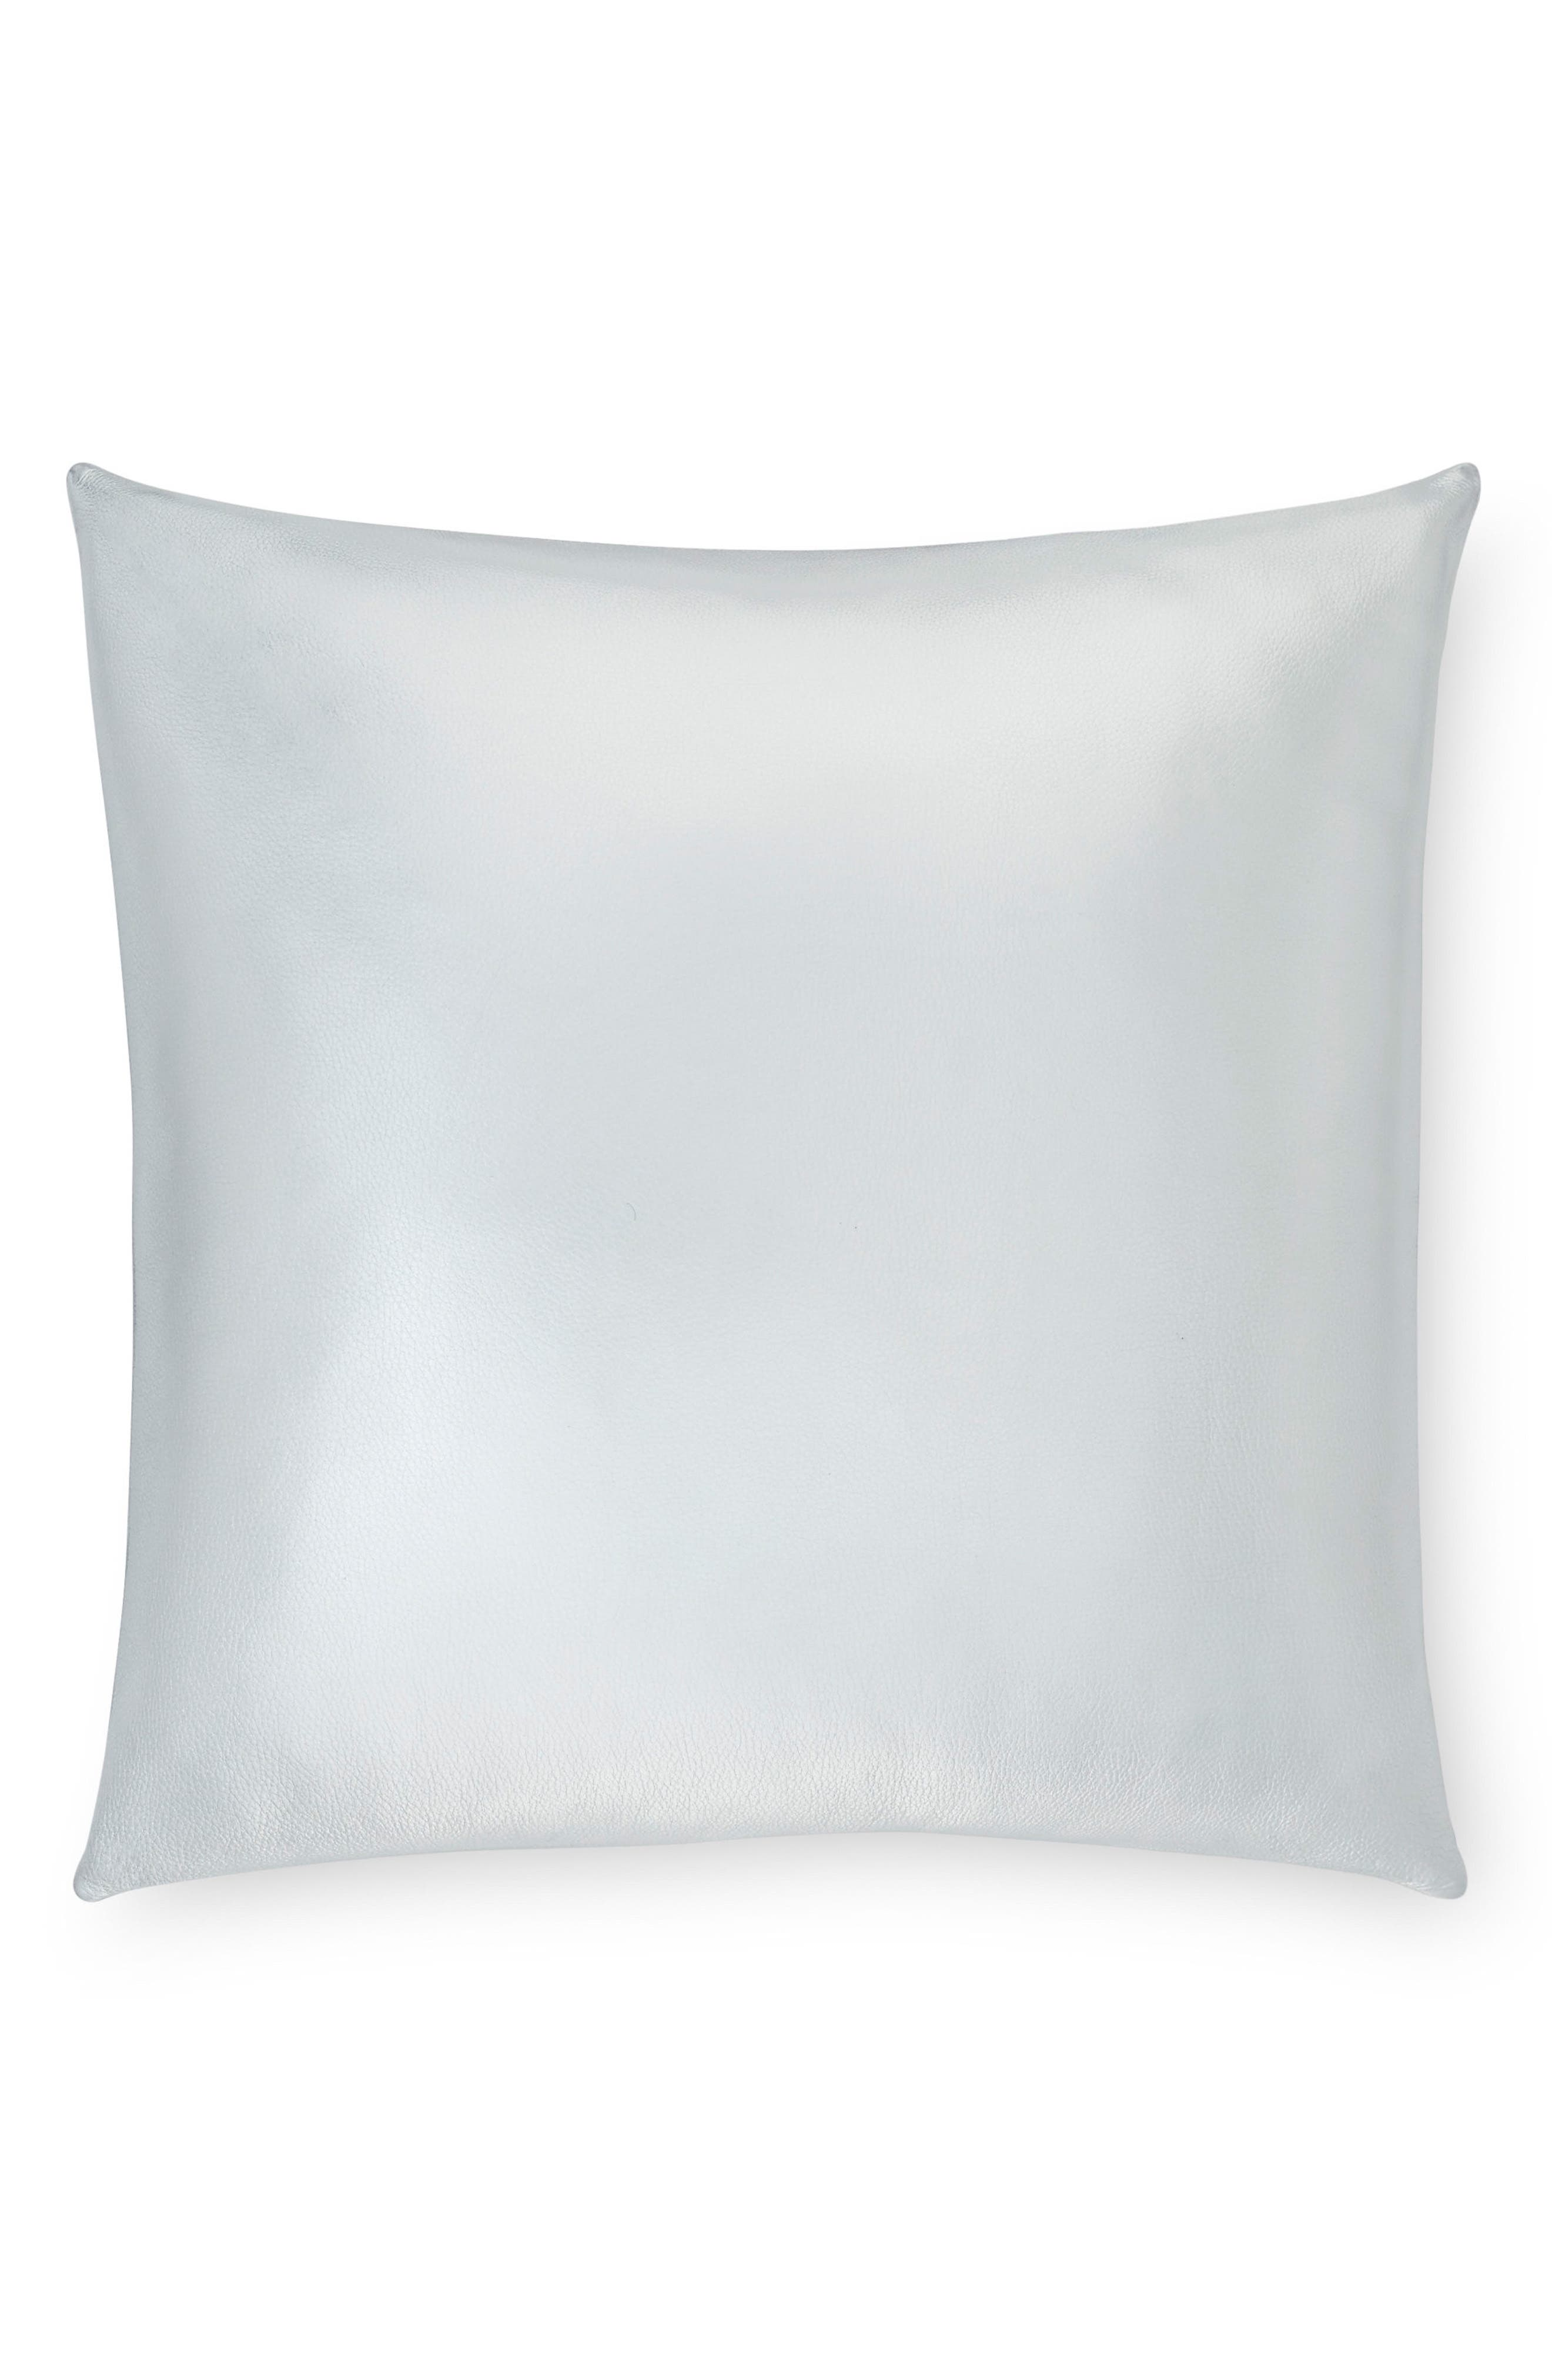 Satta Leather Accent Pillow,                         Main,                         color, Silver